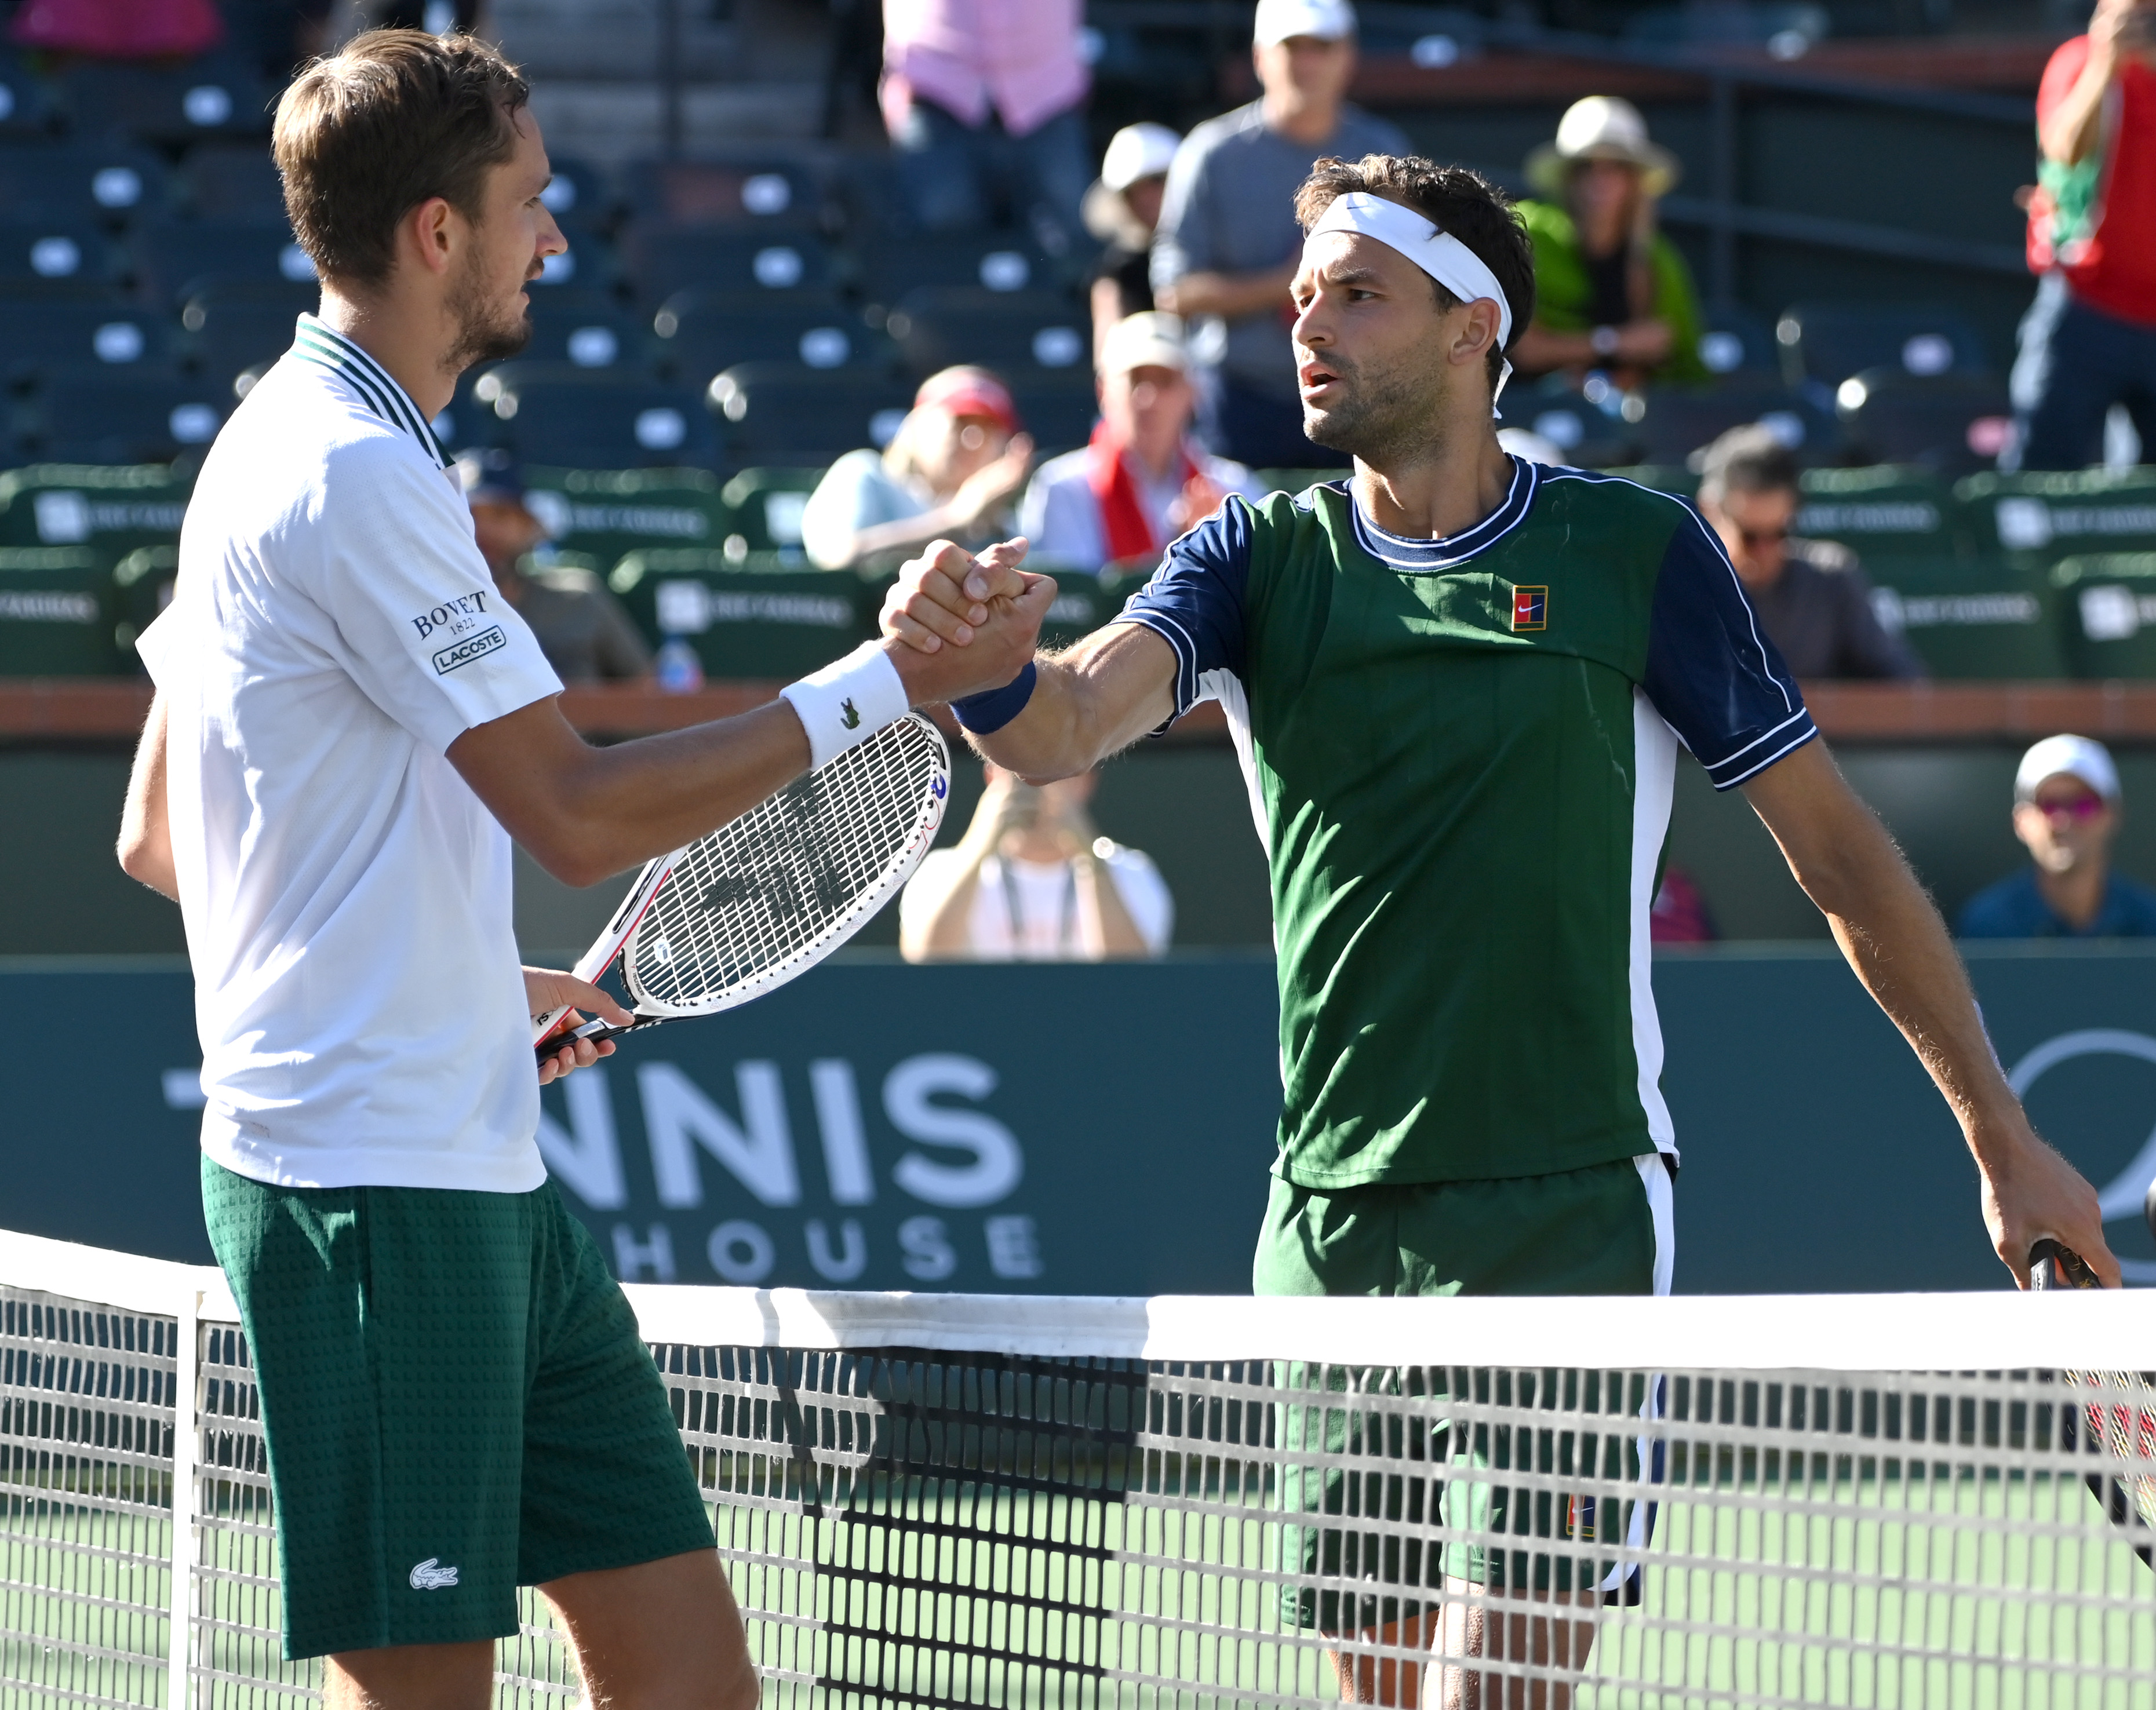 Oct 13, 2021; Indian Wells, CA, USA; Daniil Medvedev (RUS) shakes hands with Grigor Dimitrov (BUL) after their fourth round match during the BNP Paribas Open at the Indian Wells Tennis Garden. Mandatory Credit: Jayne Kamin-Oncea-USA TODAY Sports